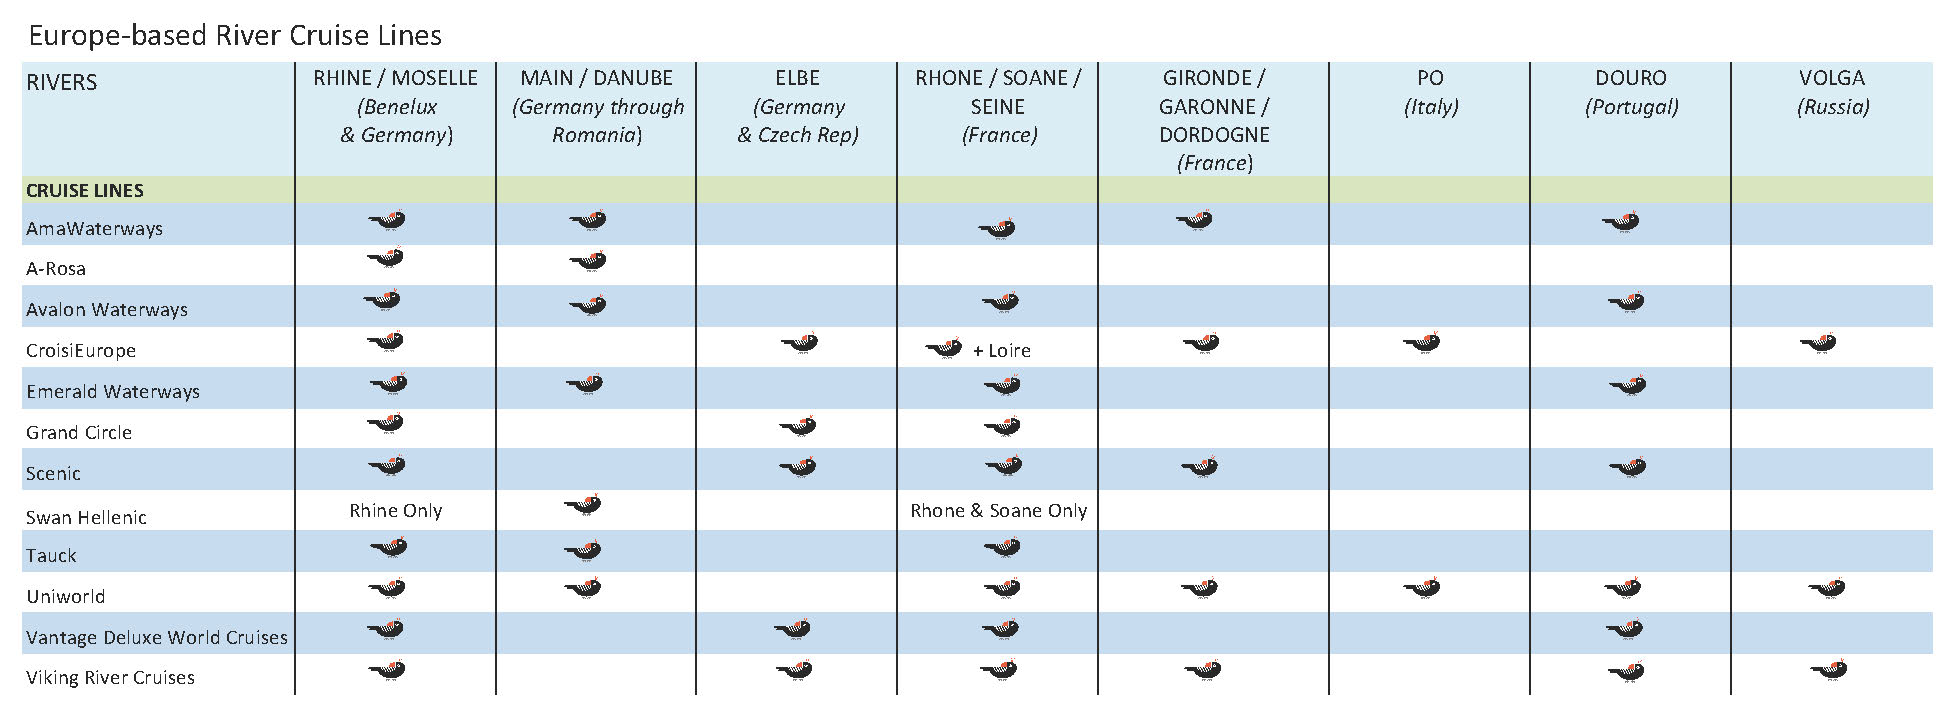 Table Europebased River Cruise Lines A Comparison Of Where They - Croisi river cruises